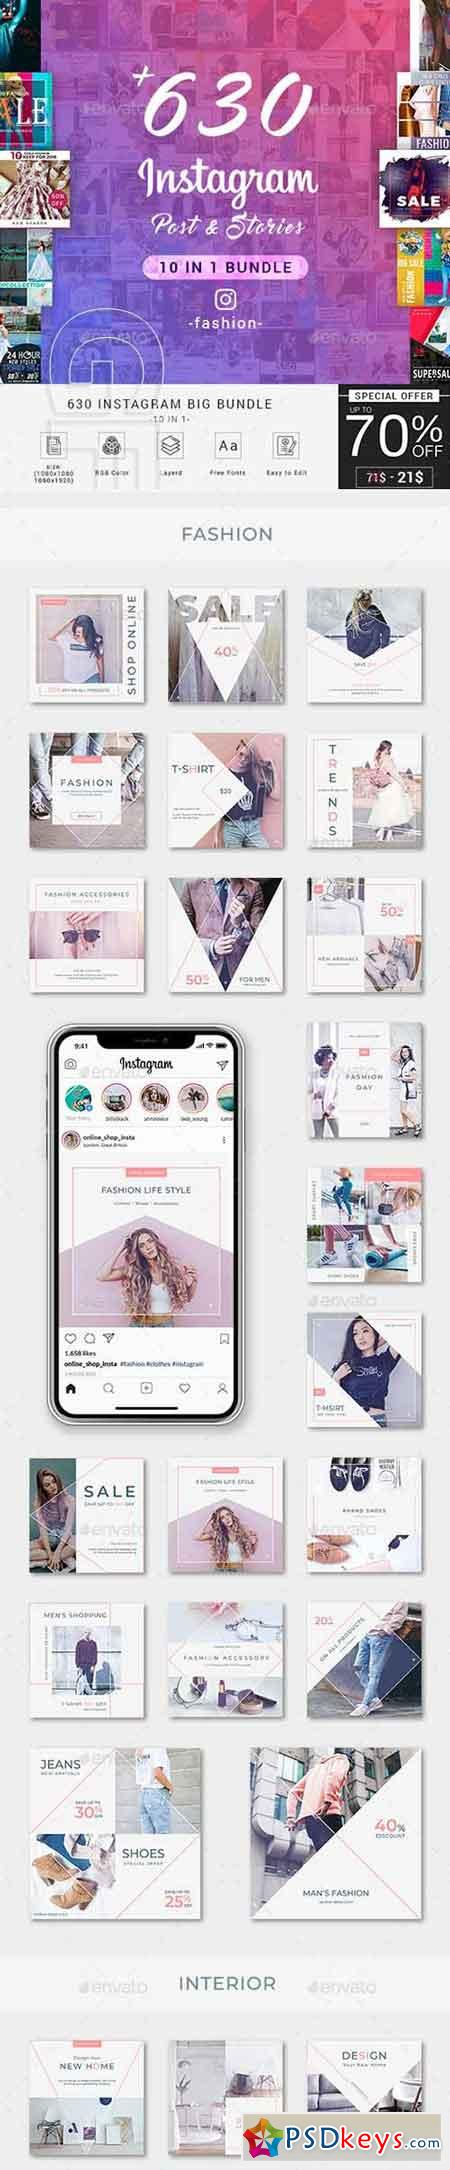 Fashion Instagram Bundle Social Media 23149117